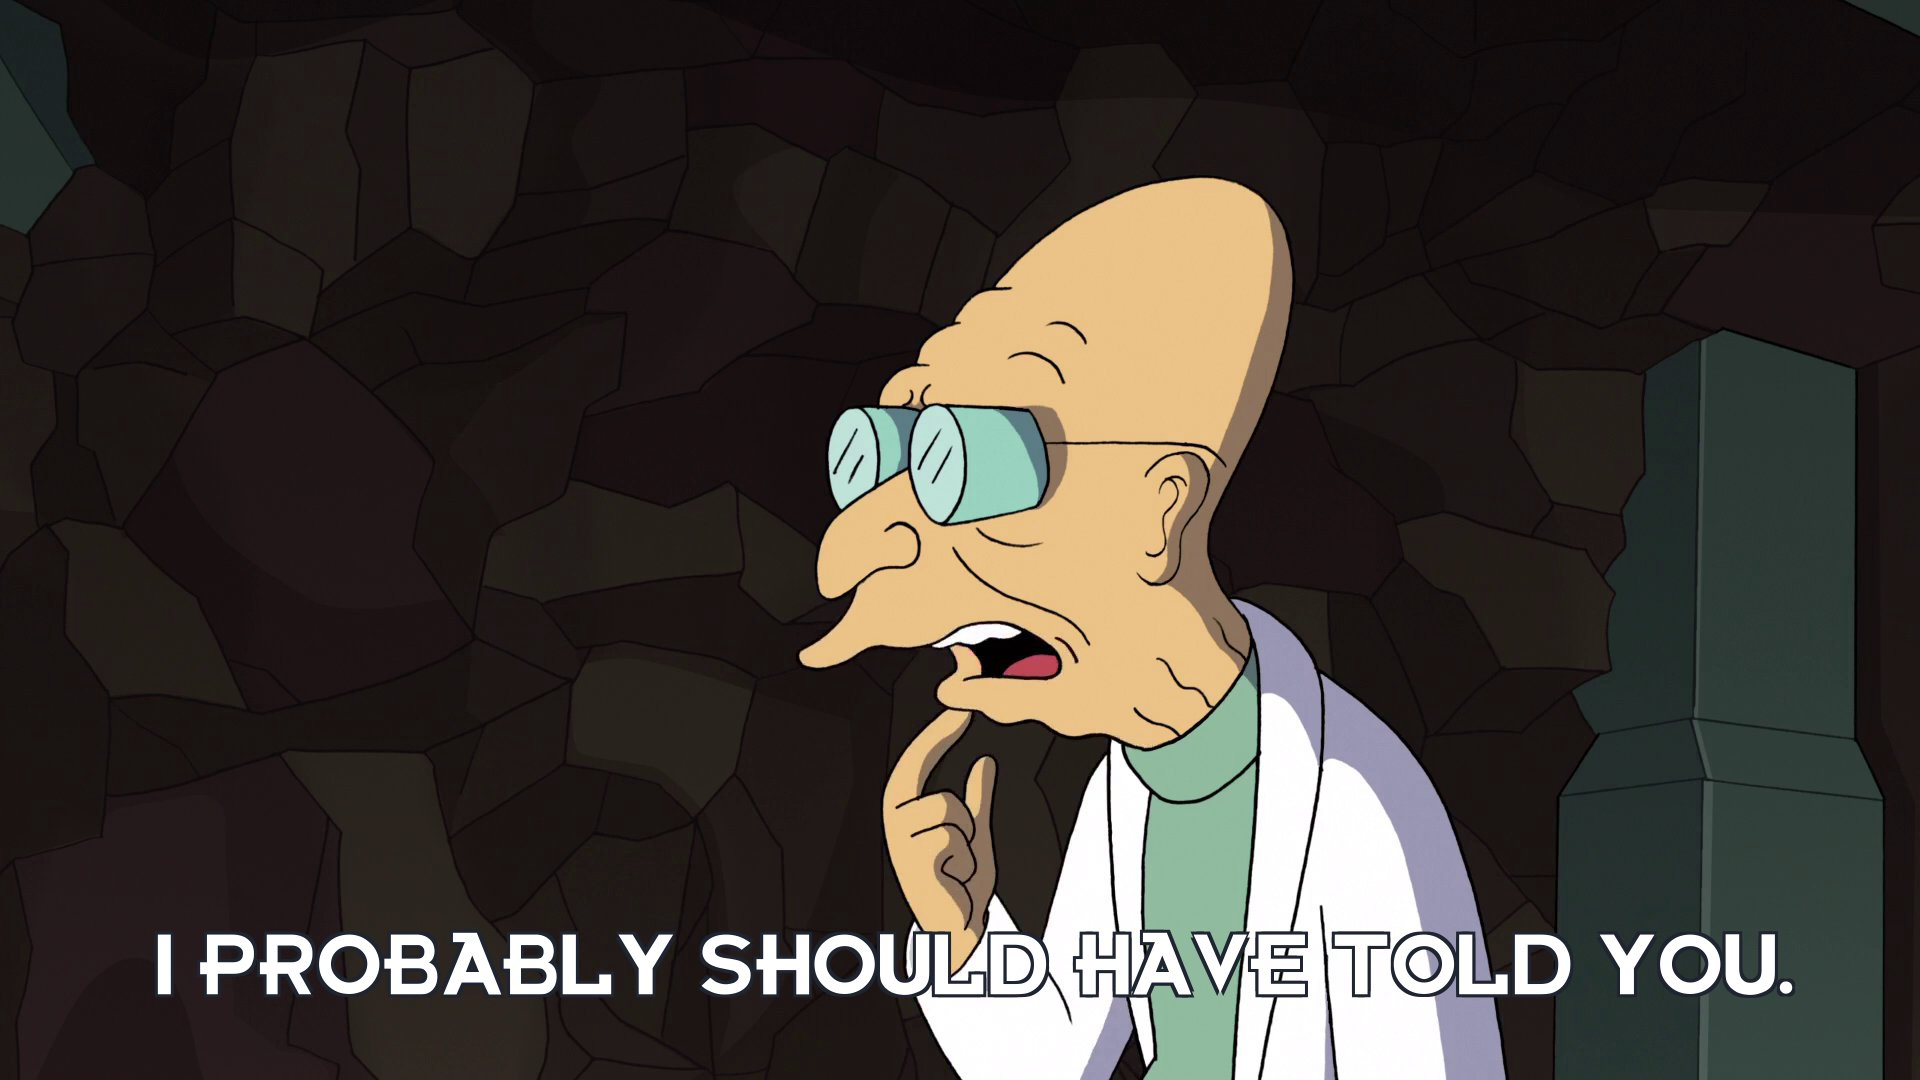 Prof Hubert J Farnsworth: I probably should have told you.